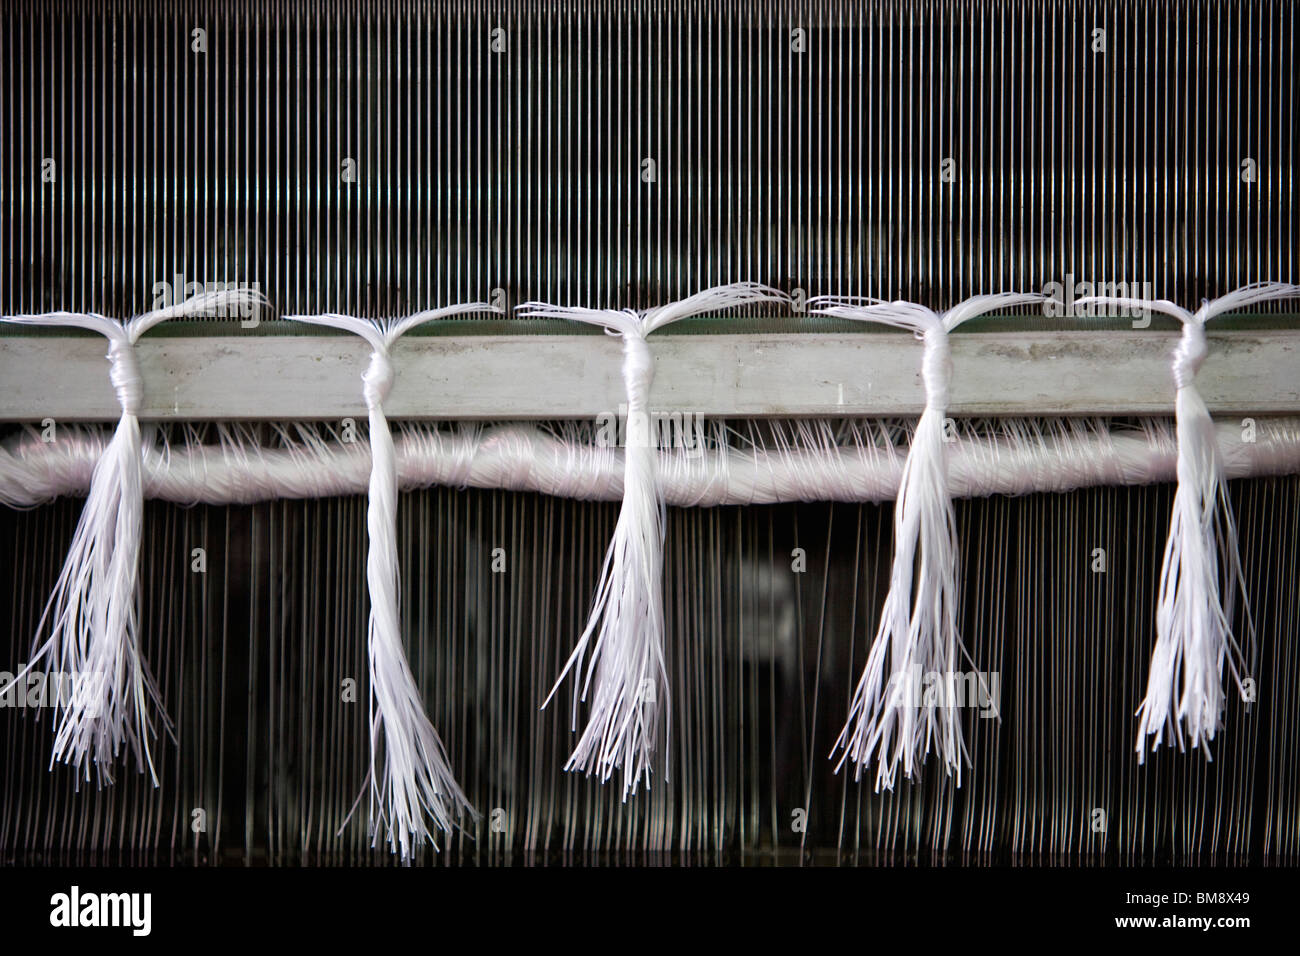 Loom in weaving mill, close-up of weaving reed - Stock Image